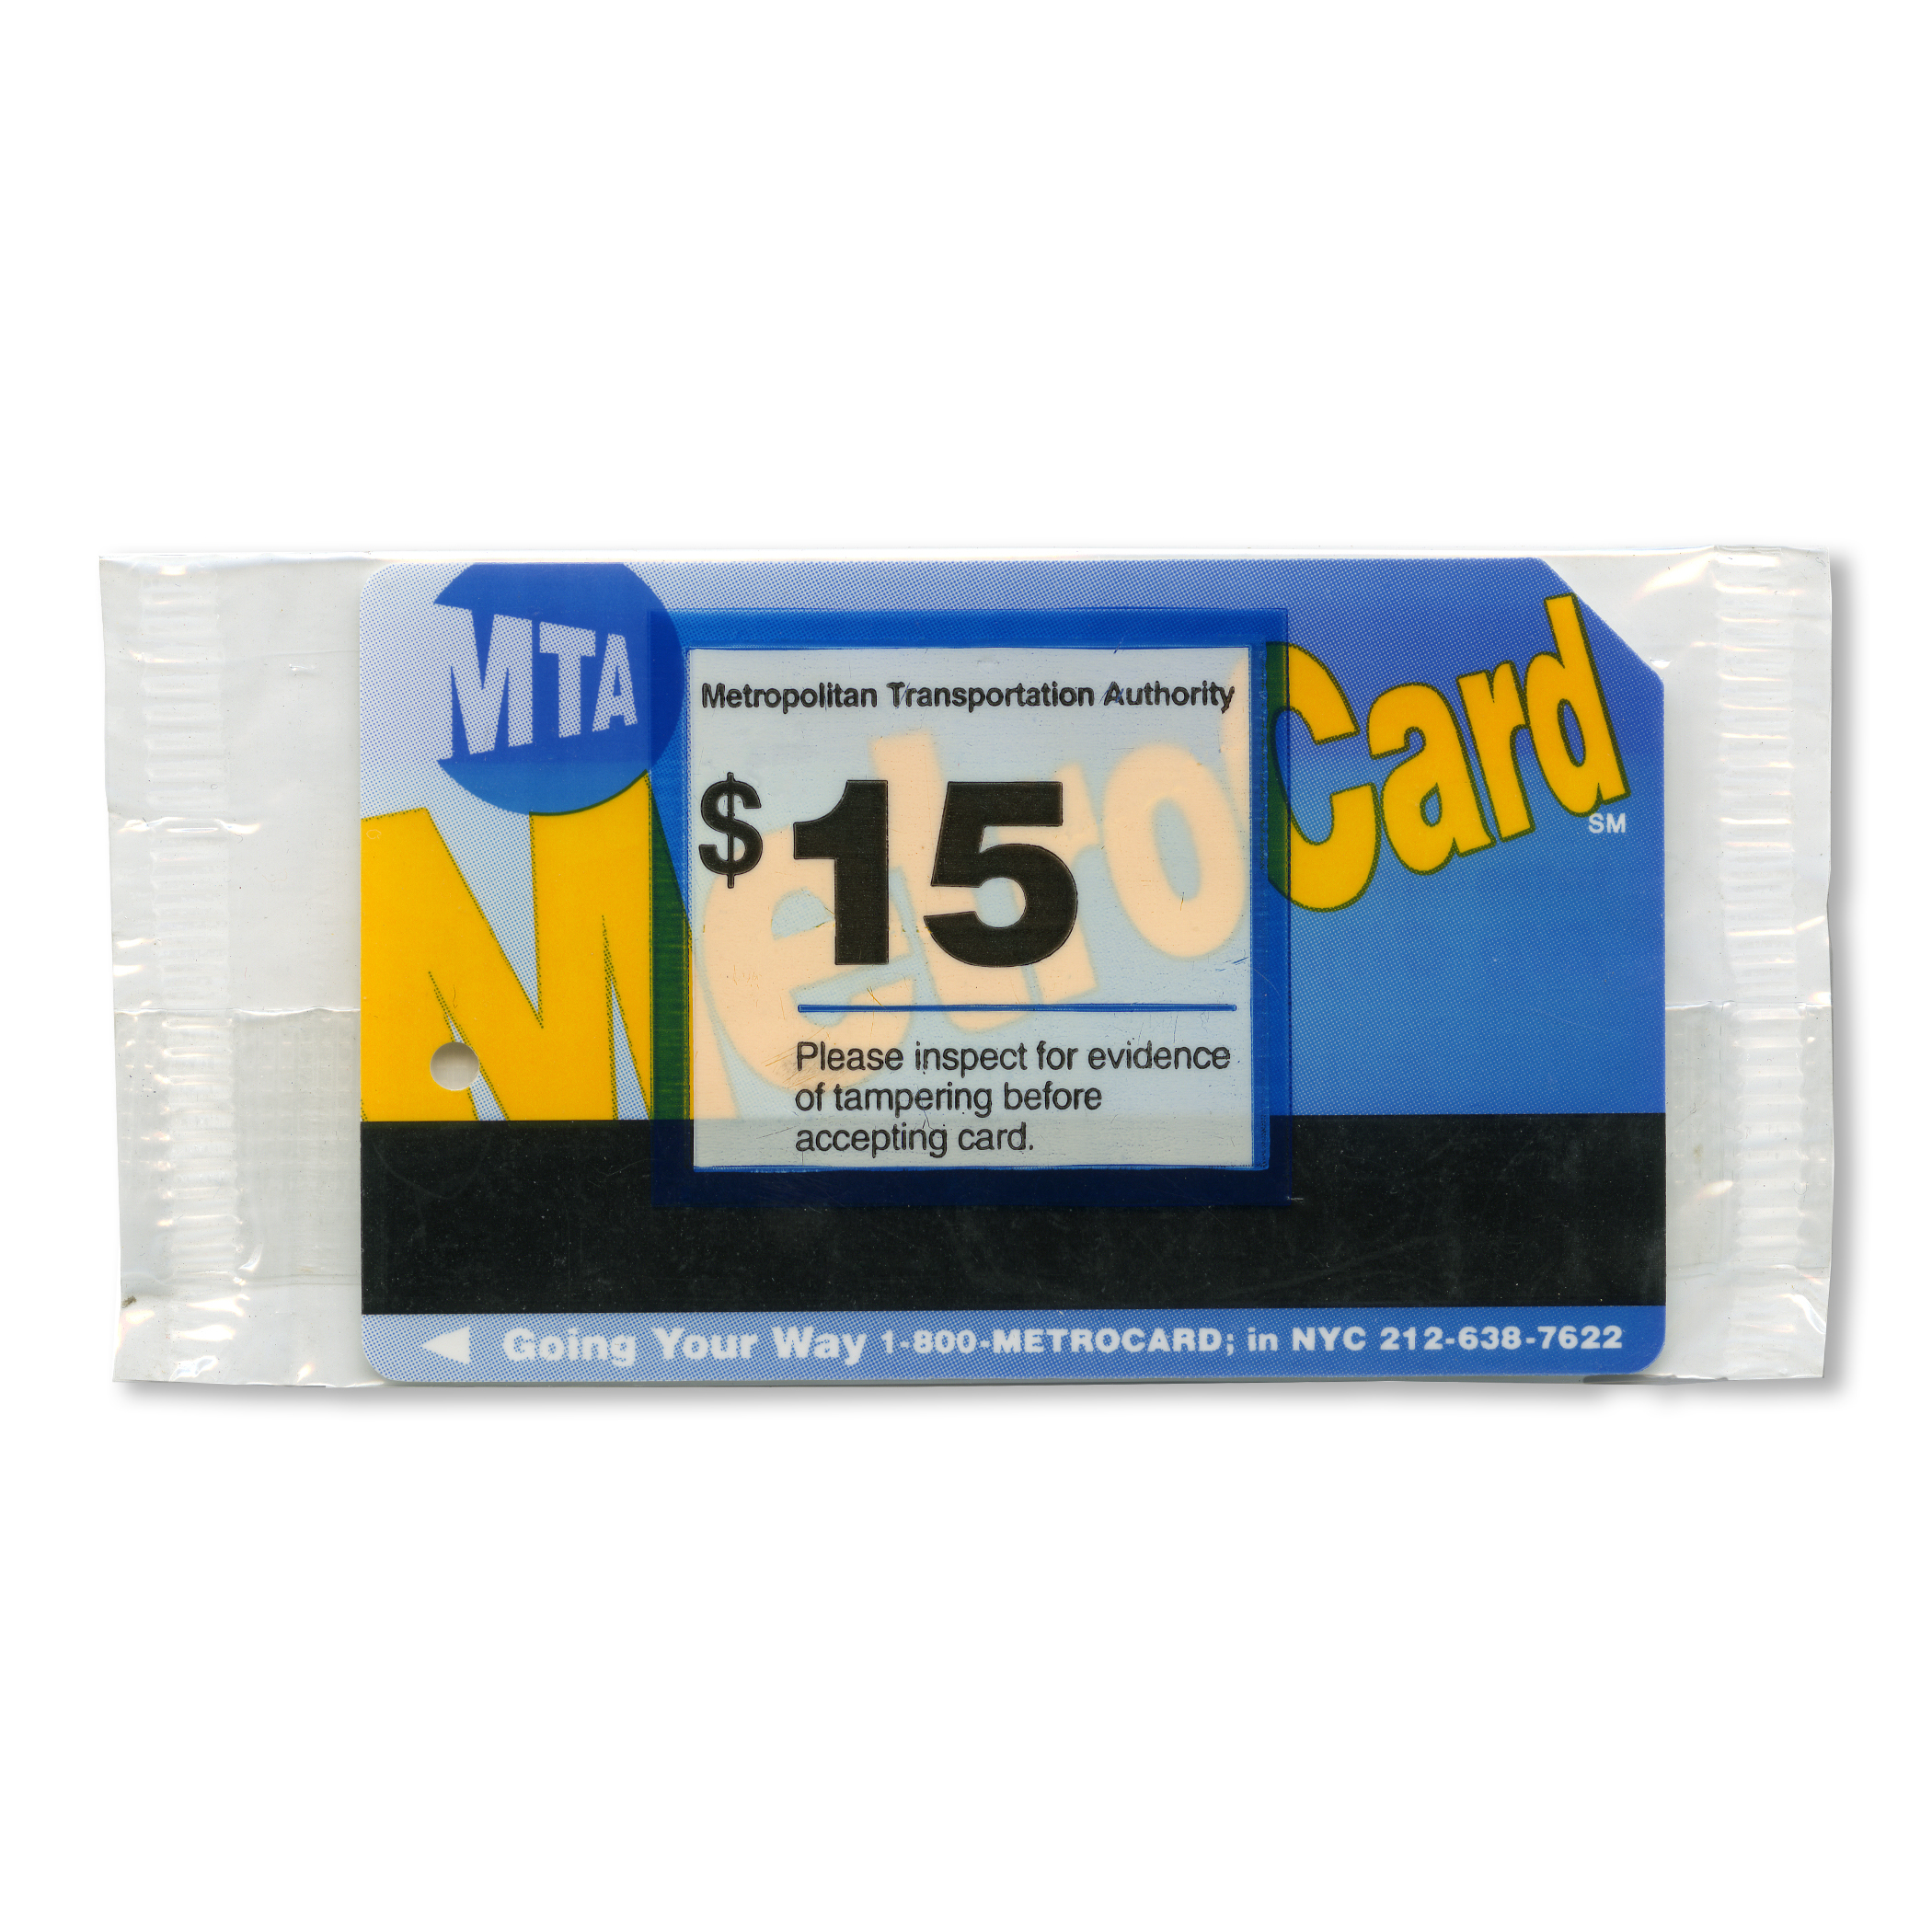 the_nycta_project_15_dollar_blue_metro_card_brian_kelley.jpg